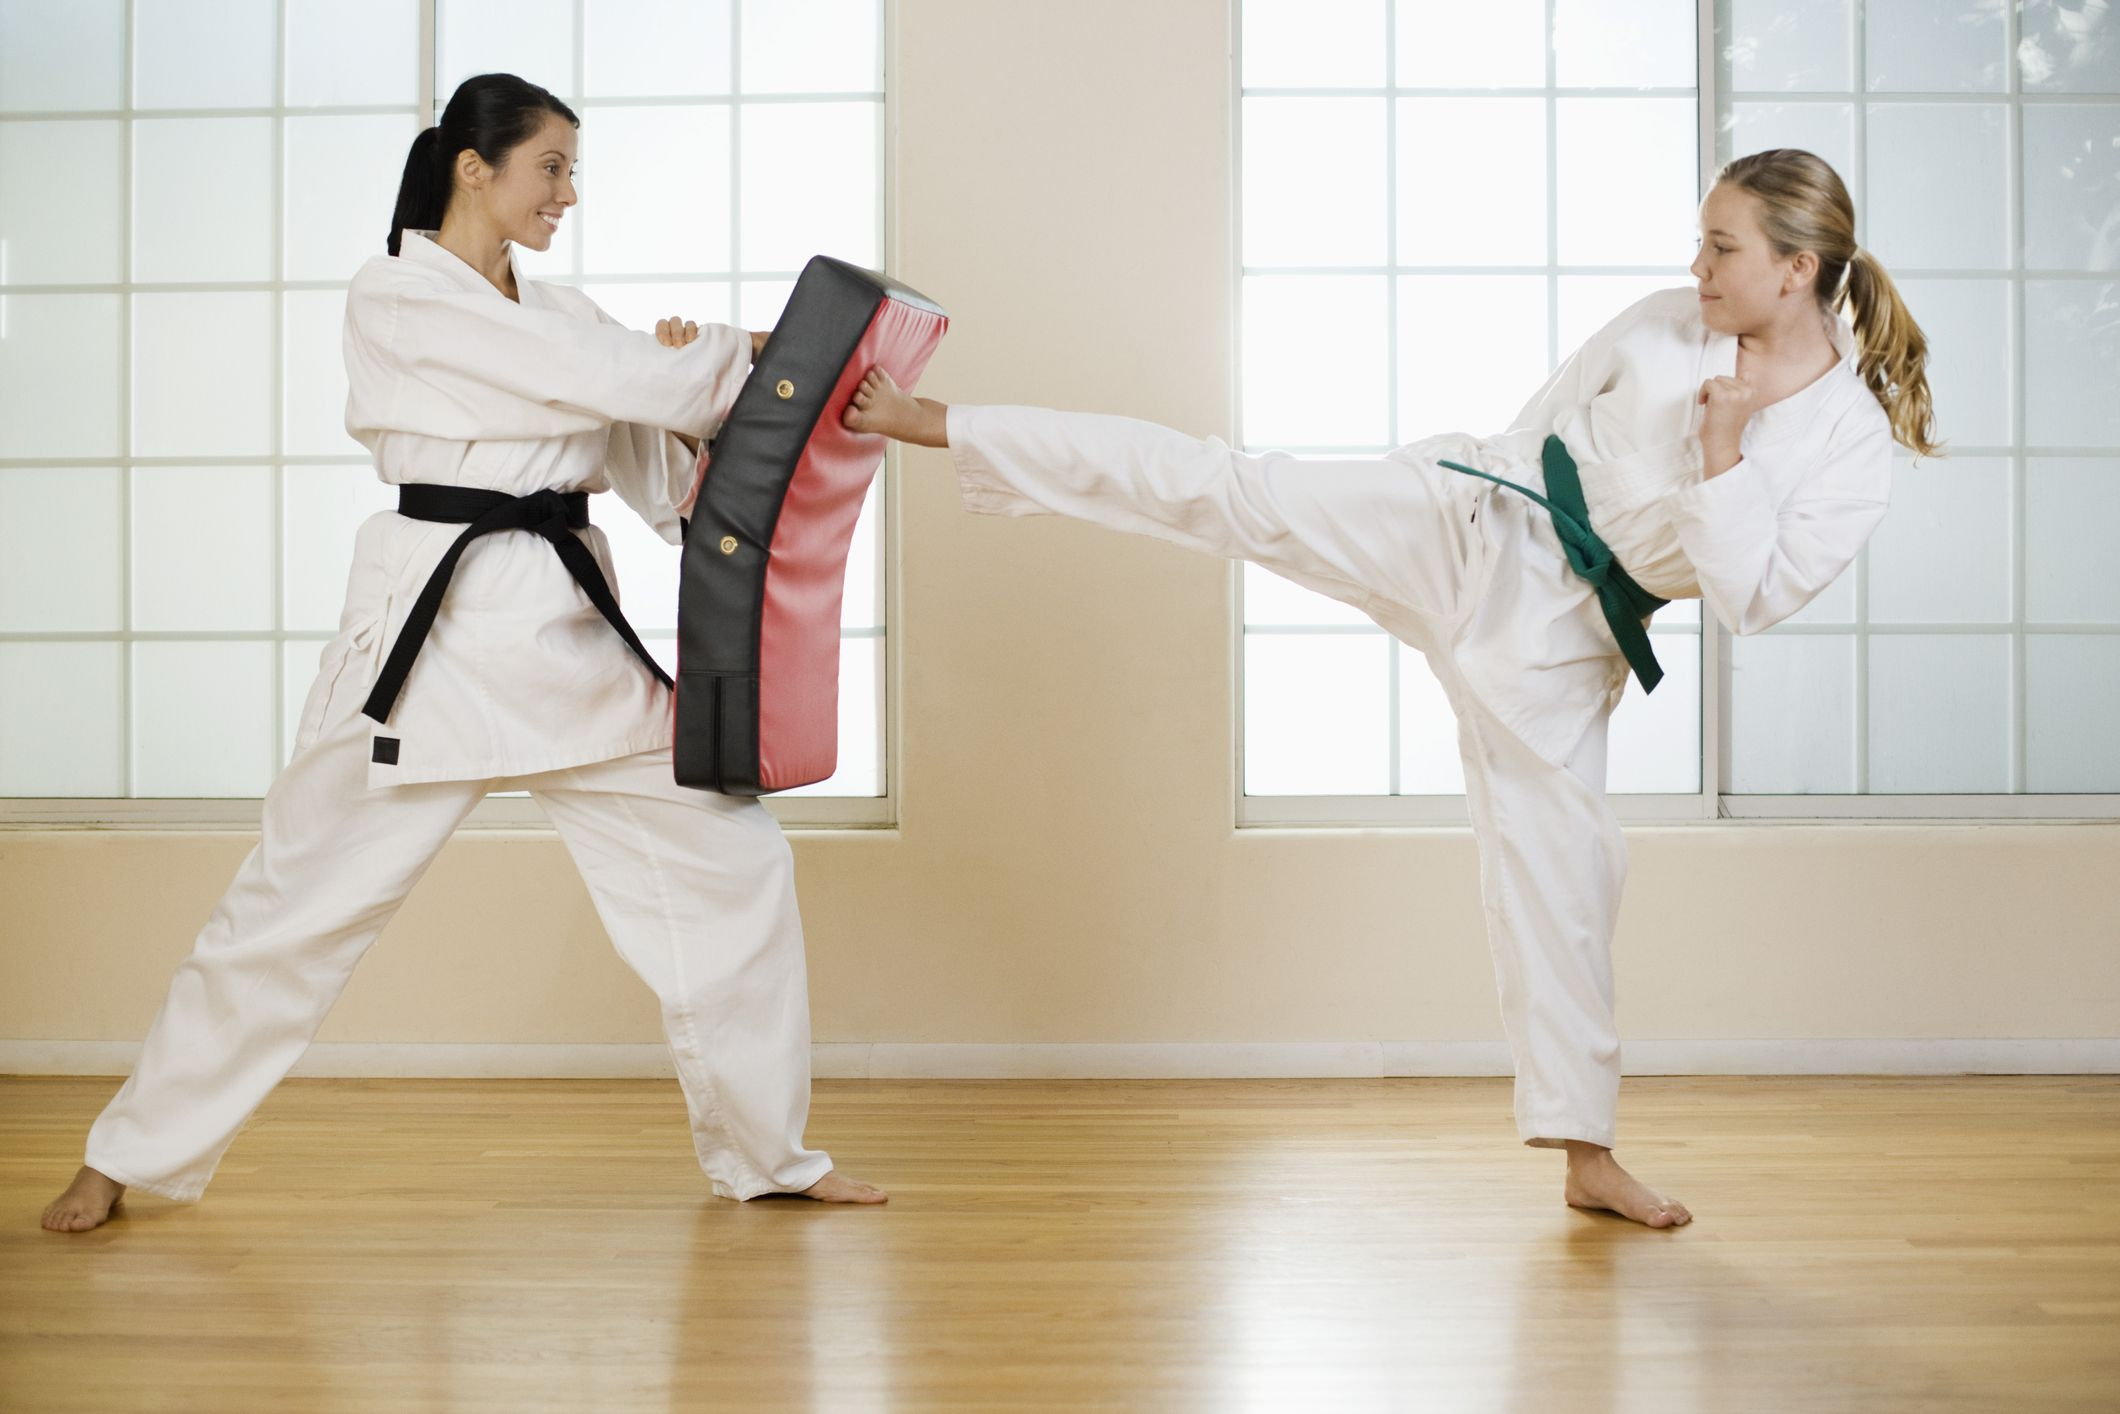 Why to learn martial arts?